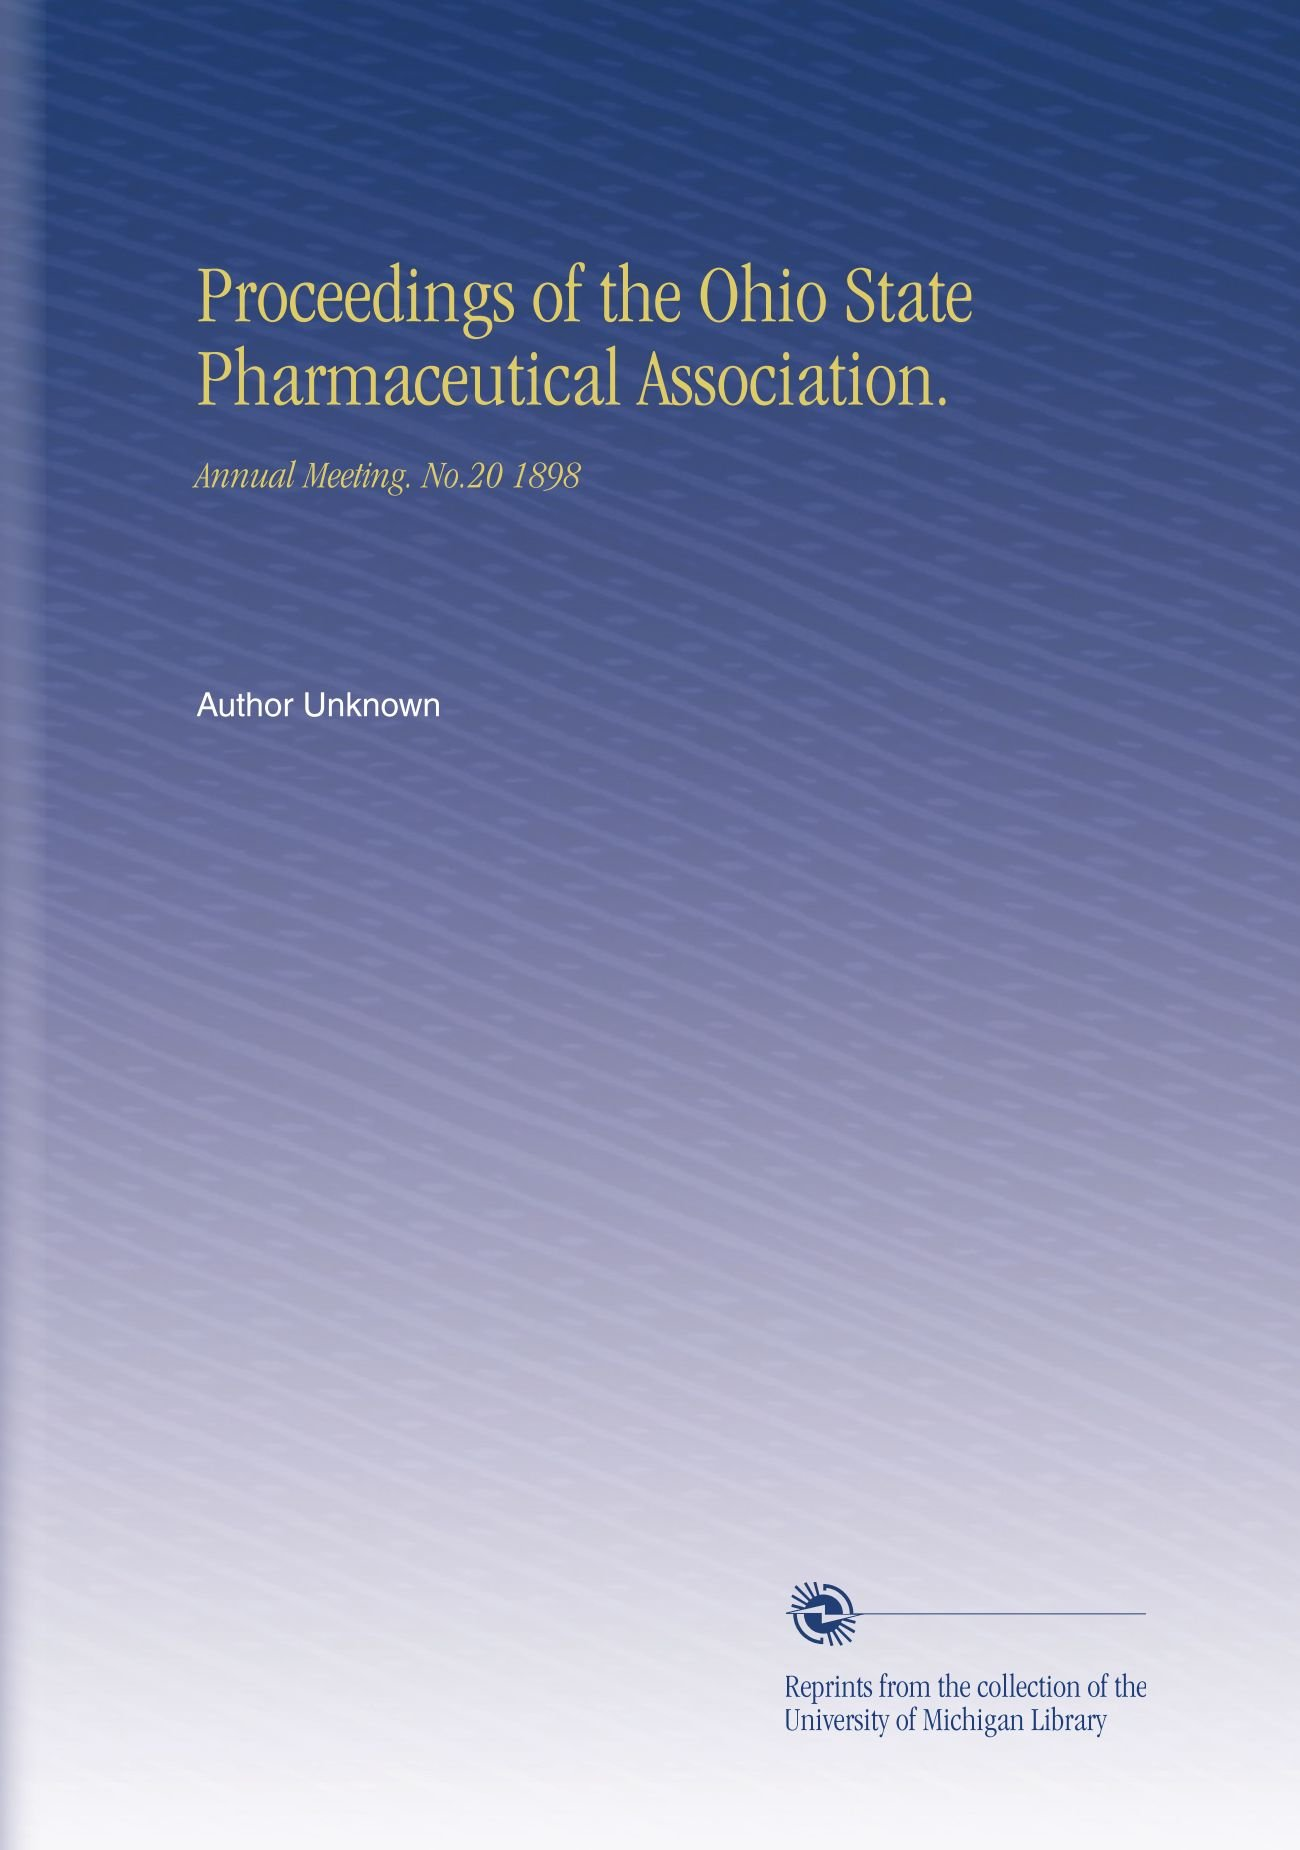 Download Proceedings of the Ohio State Pharmaceutical Association.: Annual Meeting. No.20 1898 PDF